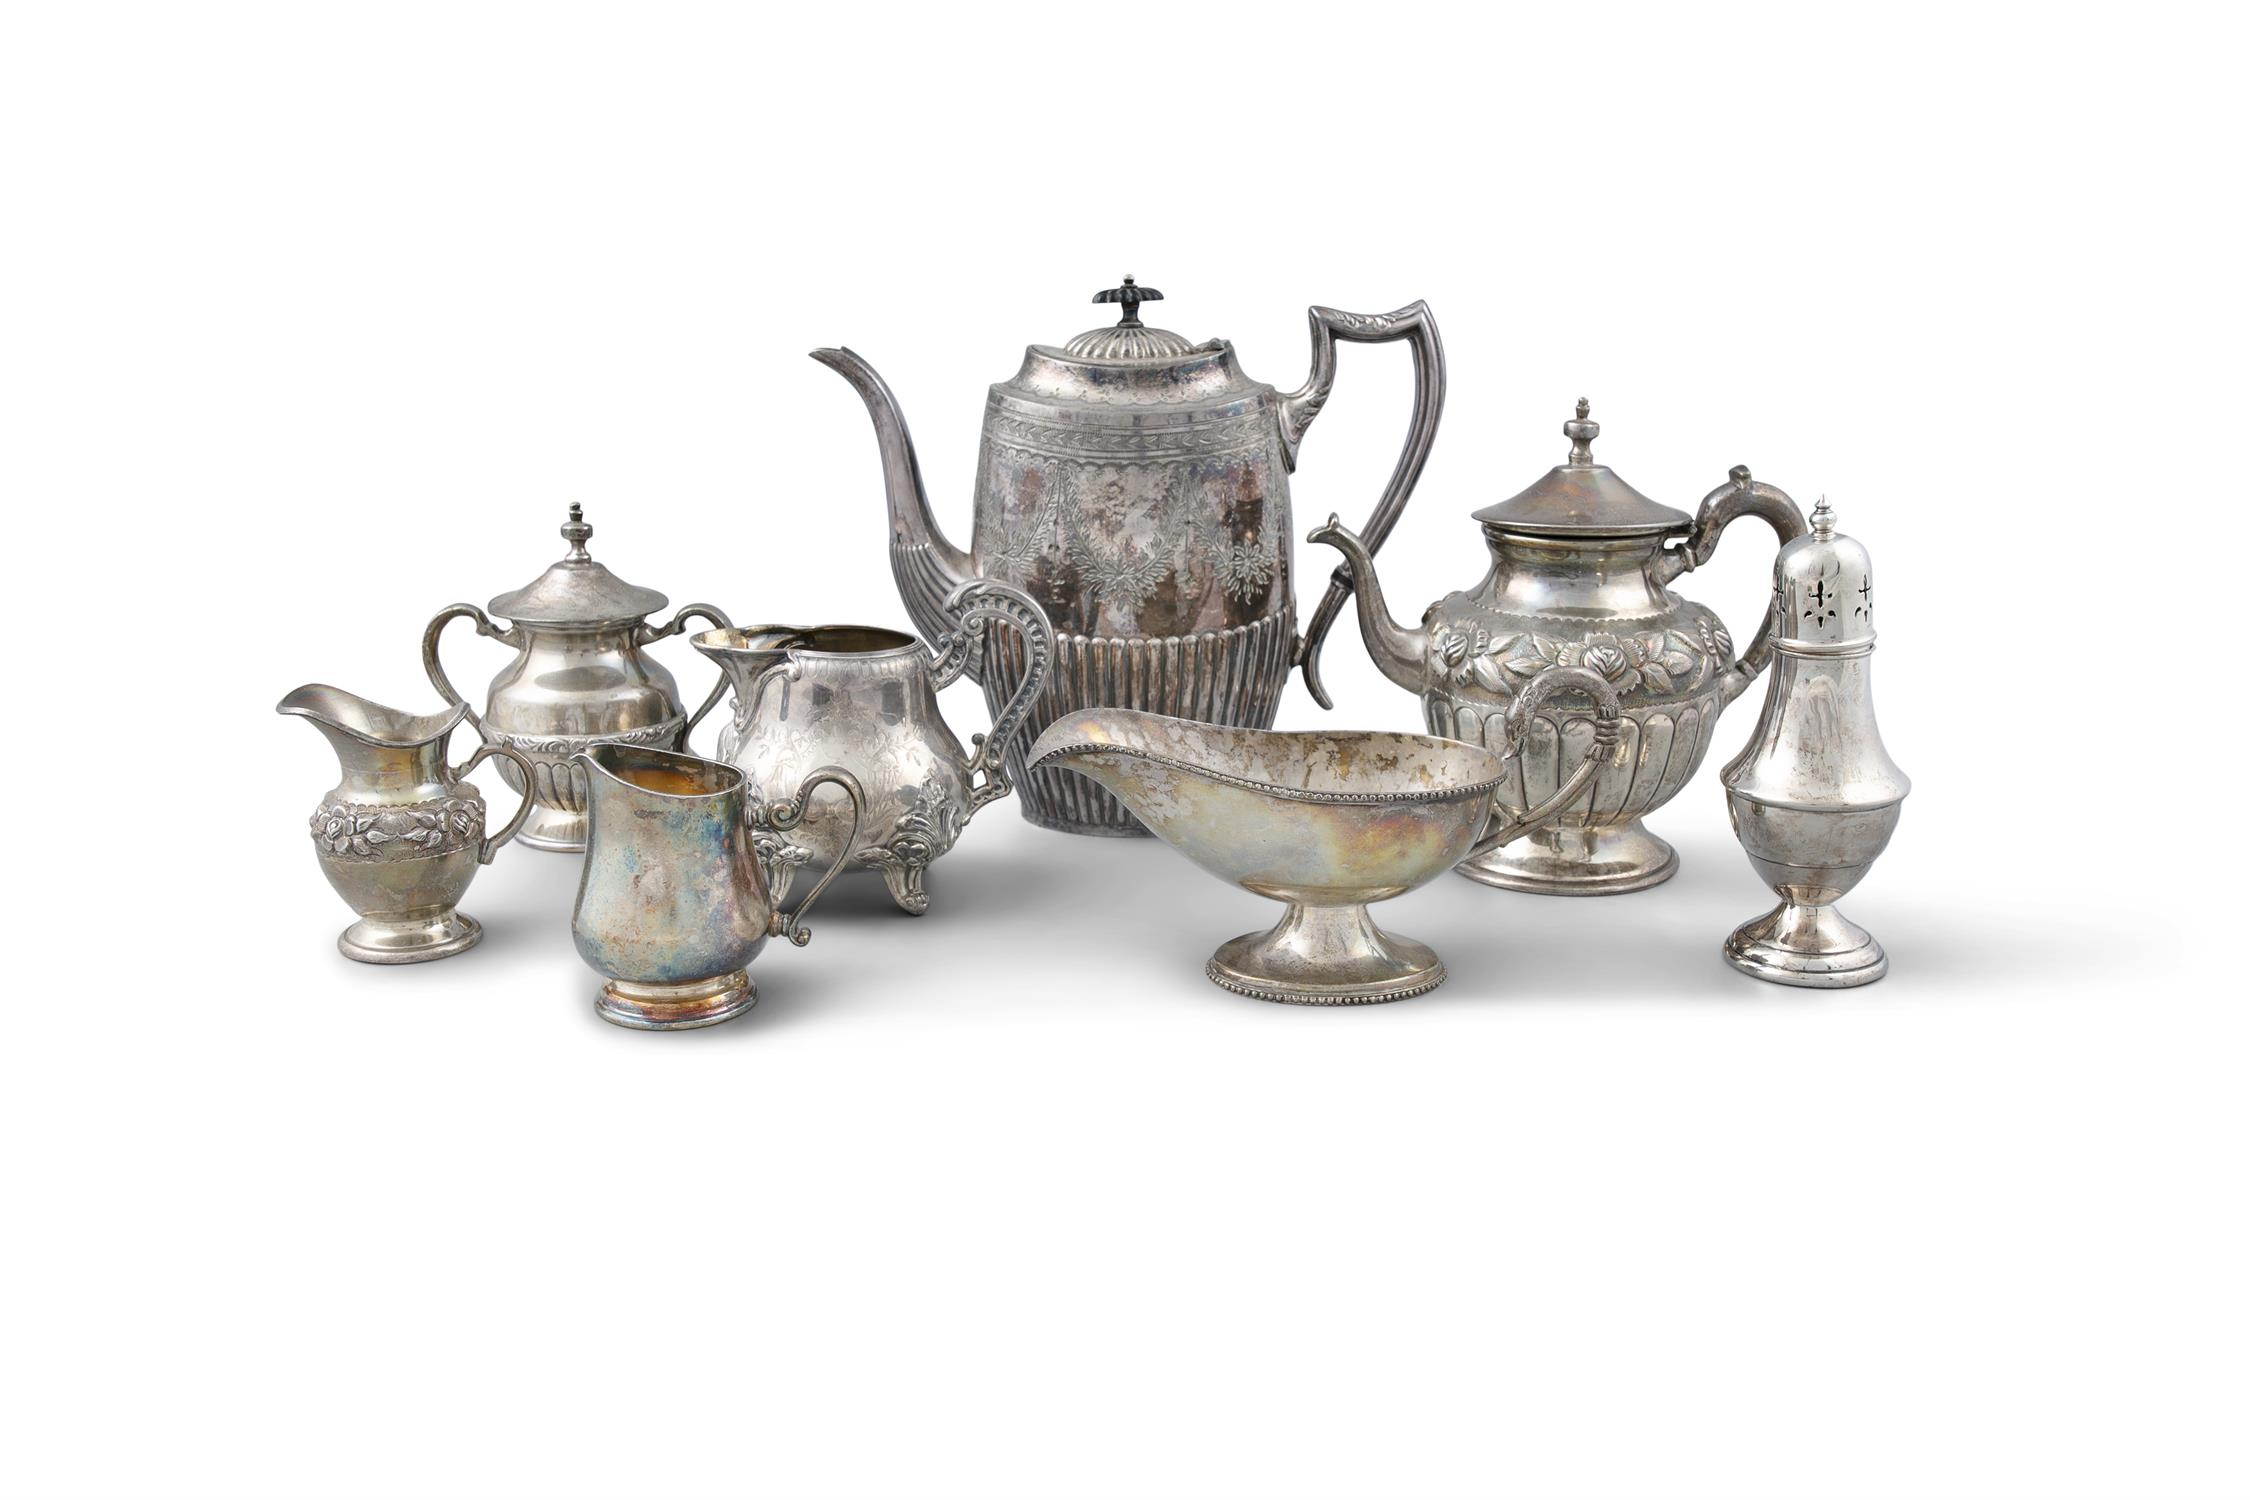 A LARGE ASSORTED COLLECTION OF SILVER AND SILVER-PLATED WARE, comprising a teapot of waisted form,